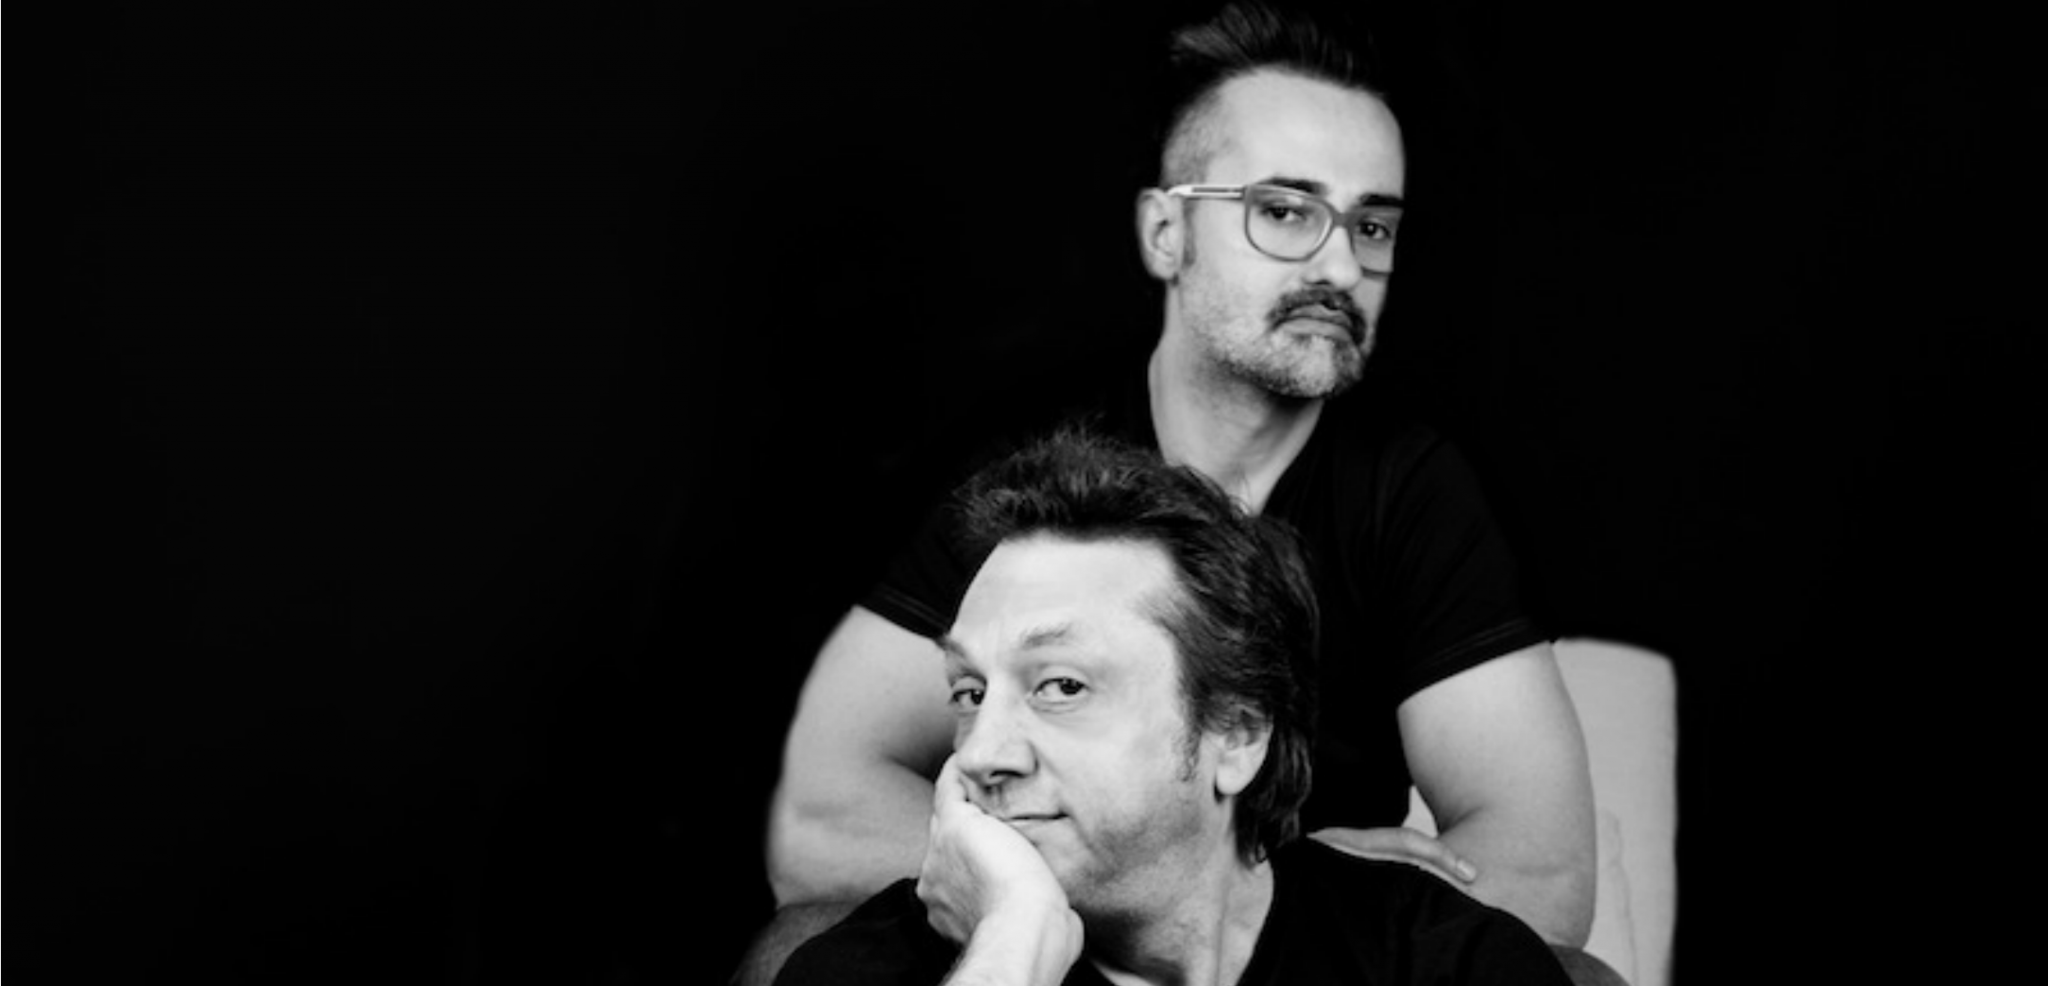 Paul C & Paolo Martini  - Stereo Production Podcast hero